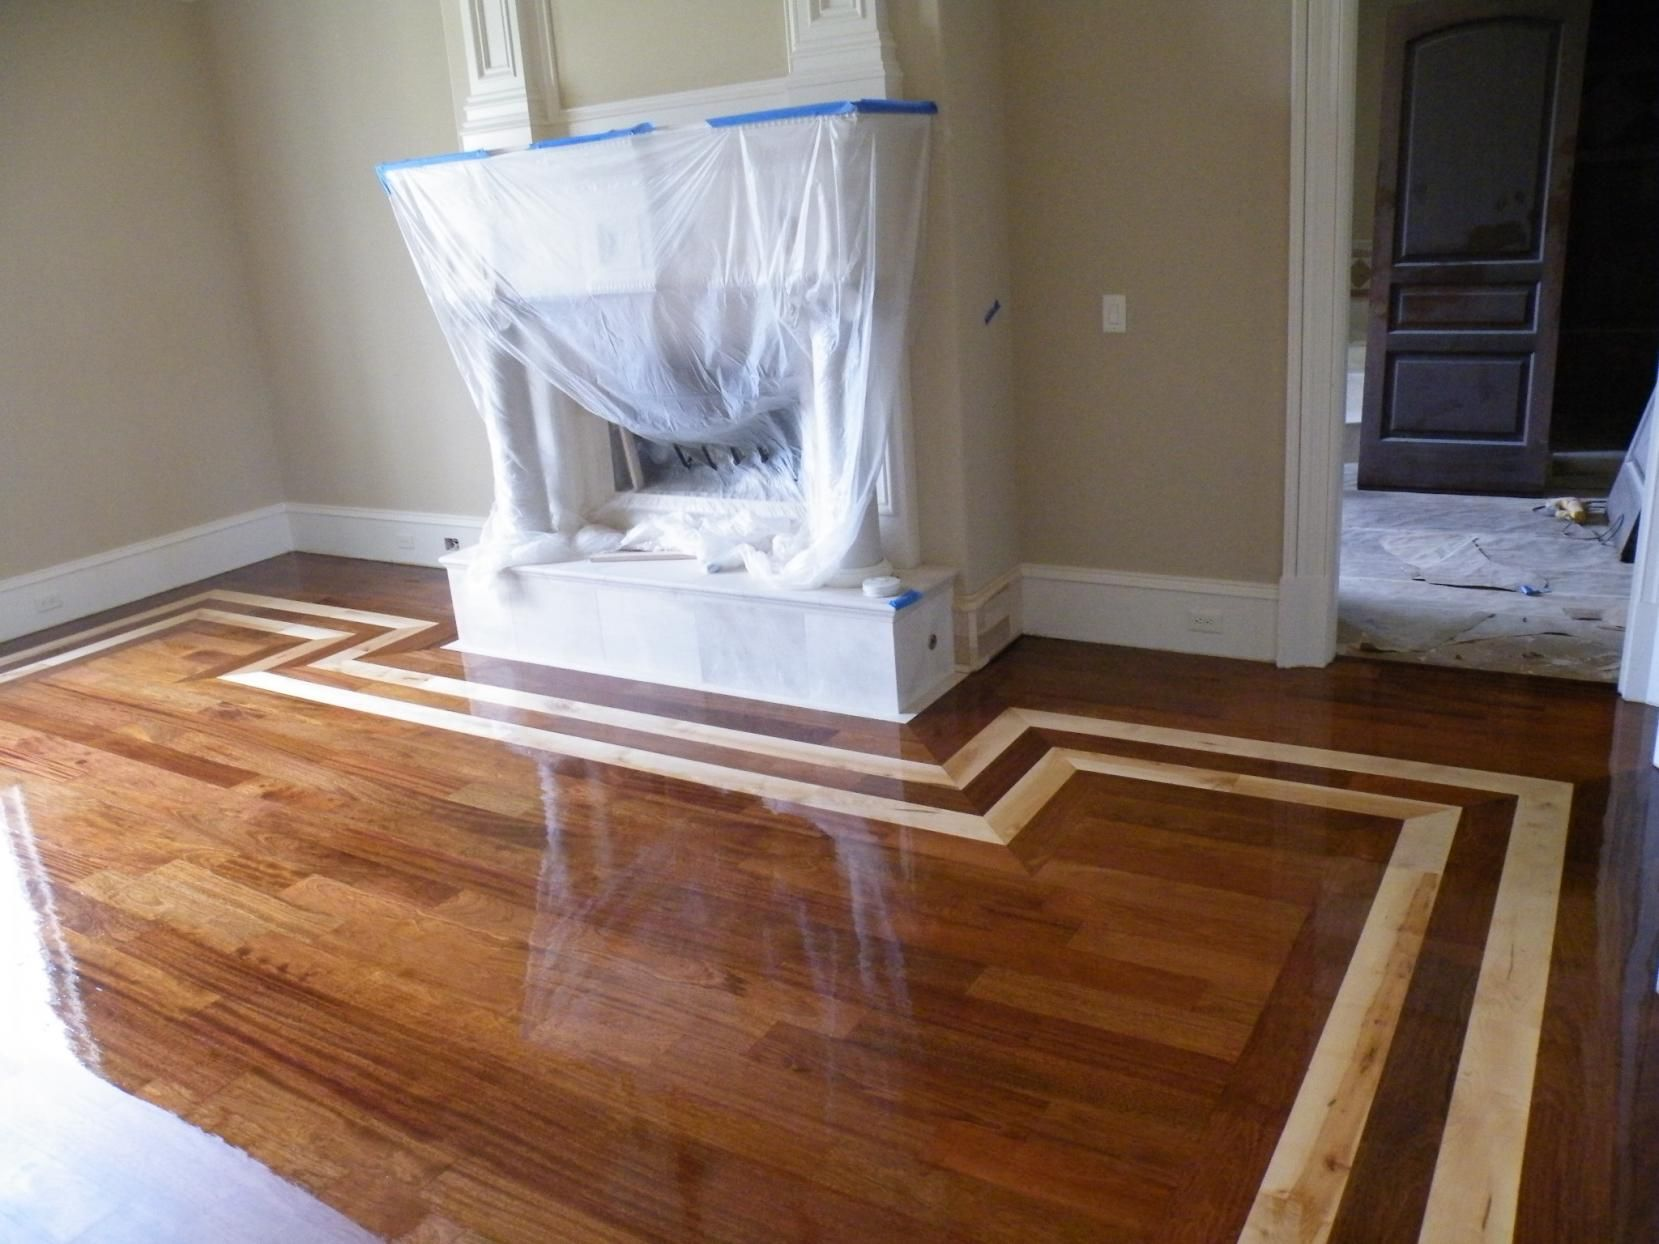 Hardwood Floor Designs id1 m21 parquet and b6 border Fine Faux Hardwood Flooring On Floor With Out The Old Carpet And